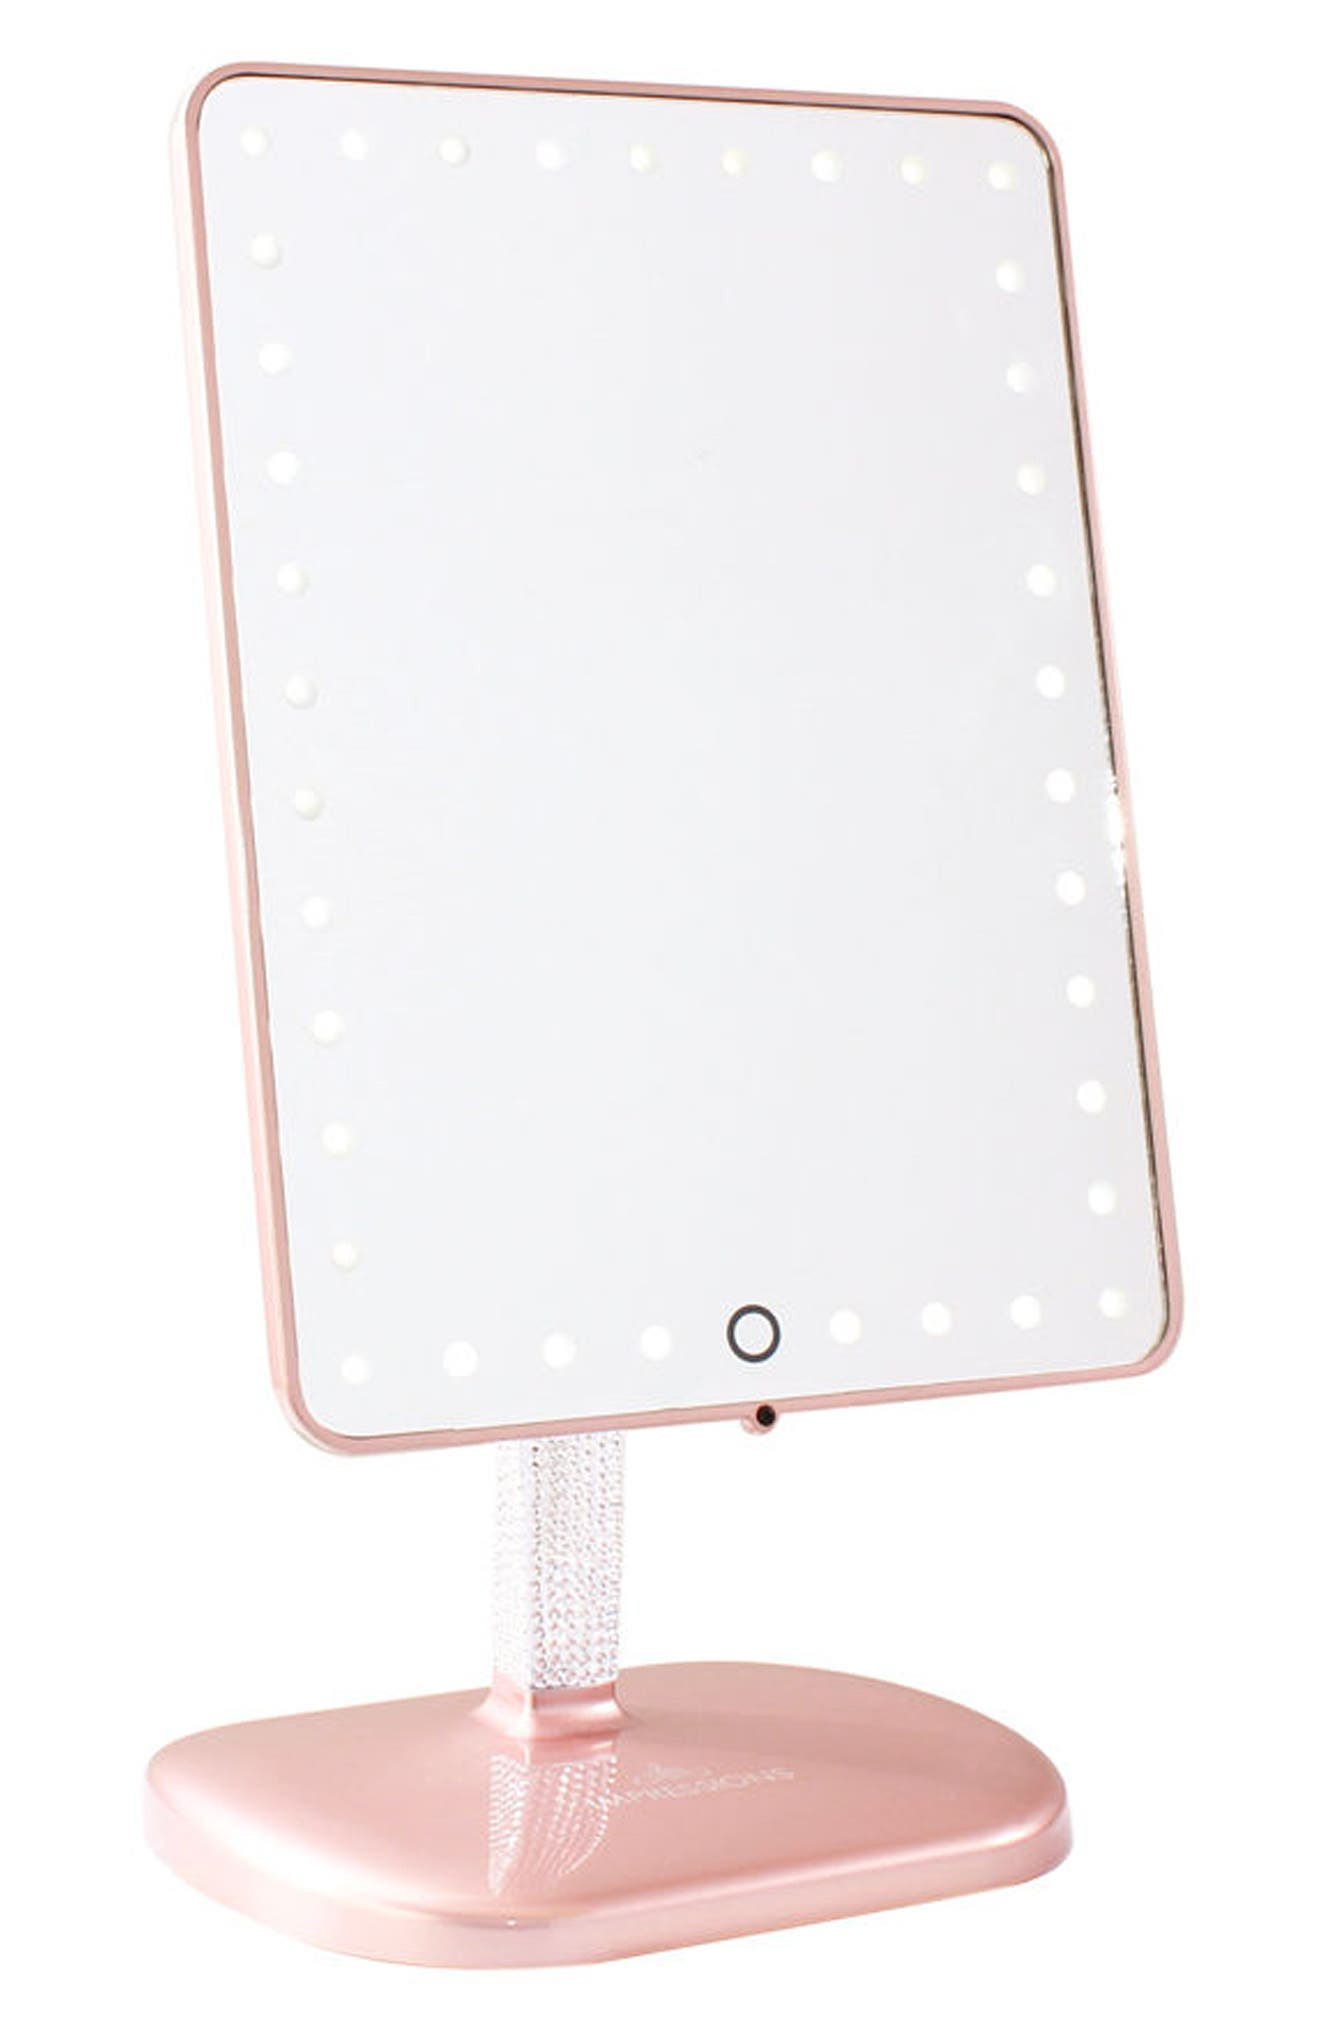 Alternate Image 1 Selected - Impressions Vanity Co. Touch Pro LED Makeup Mirror with Bluetooth® Audio & Speakerphone